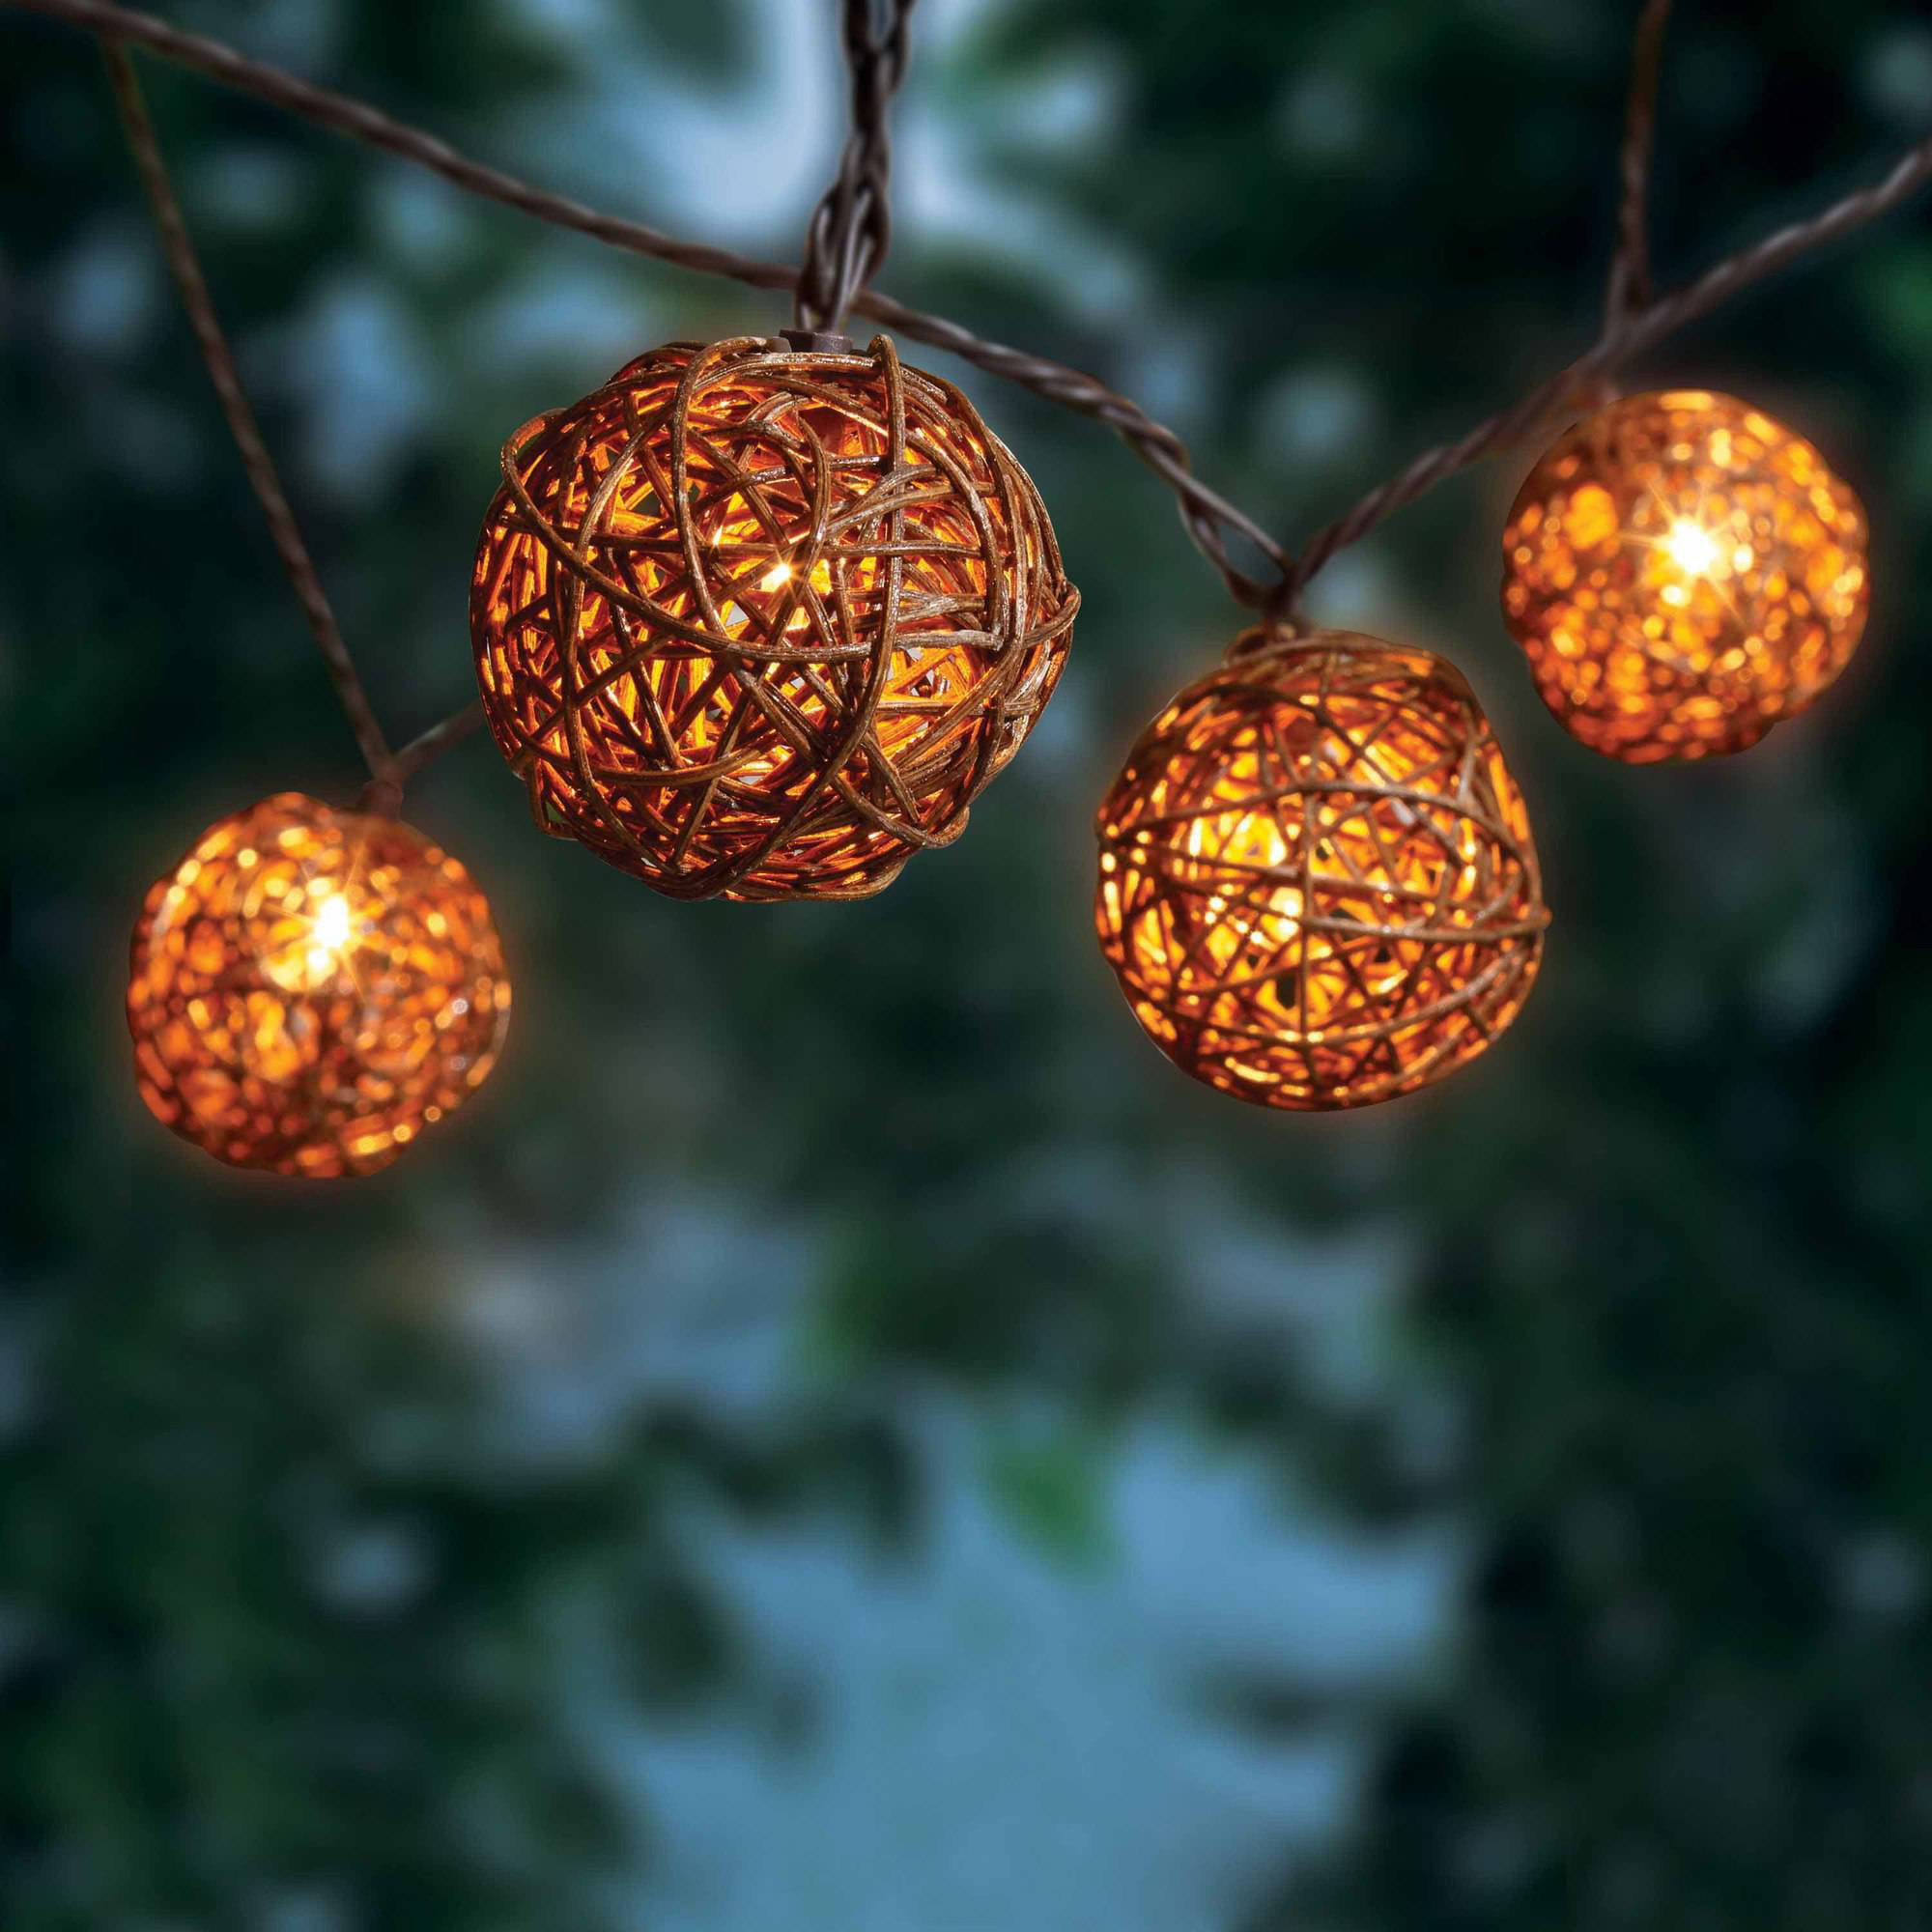 Better Homes and Gardens Wicker Ball Lights, 20 Count by SUNRISE LIGHT CO., LTD